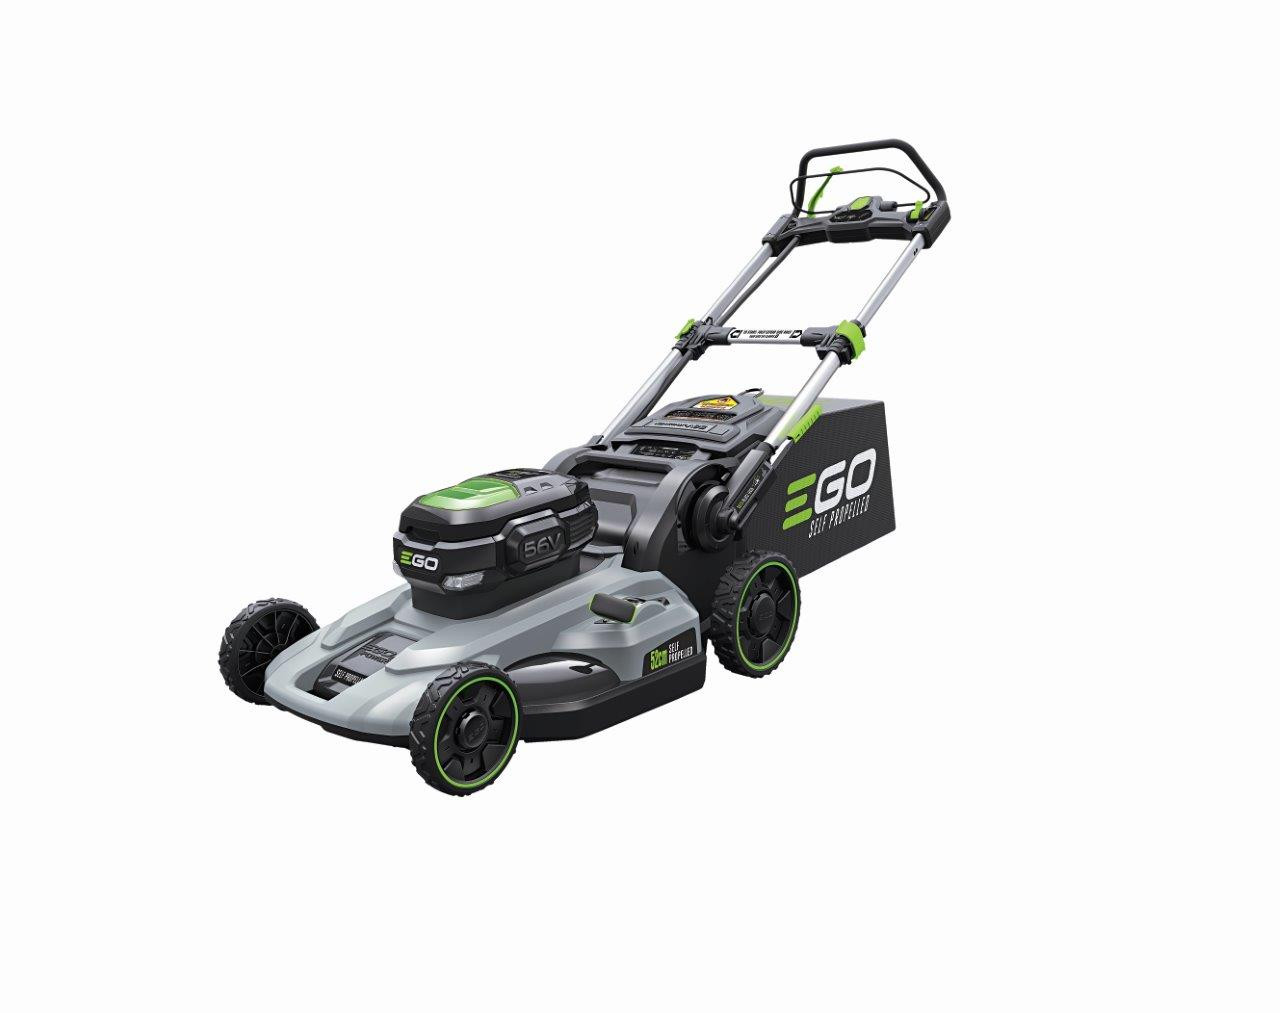 EGO POWER+ 52CM SELF PROPELLED LAWN MOWER FULL SHOT